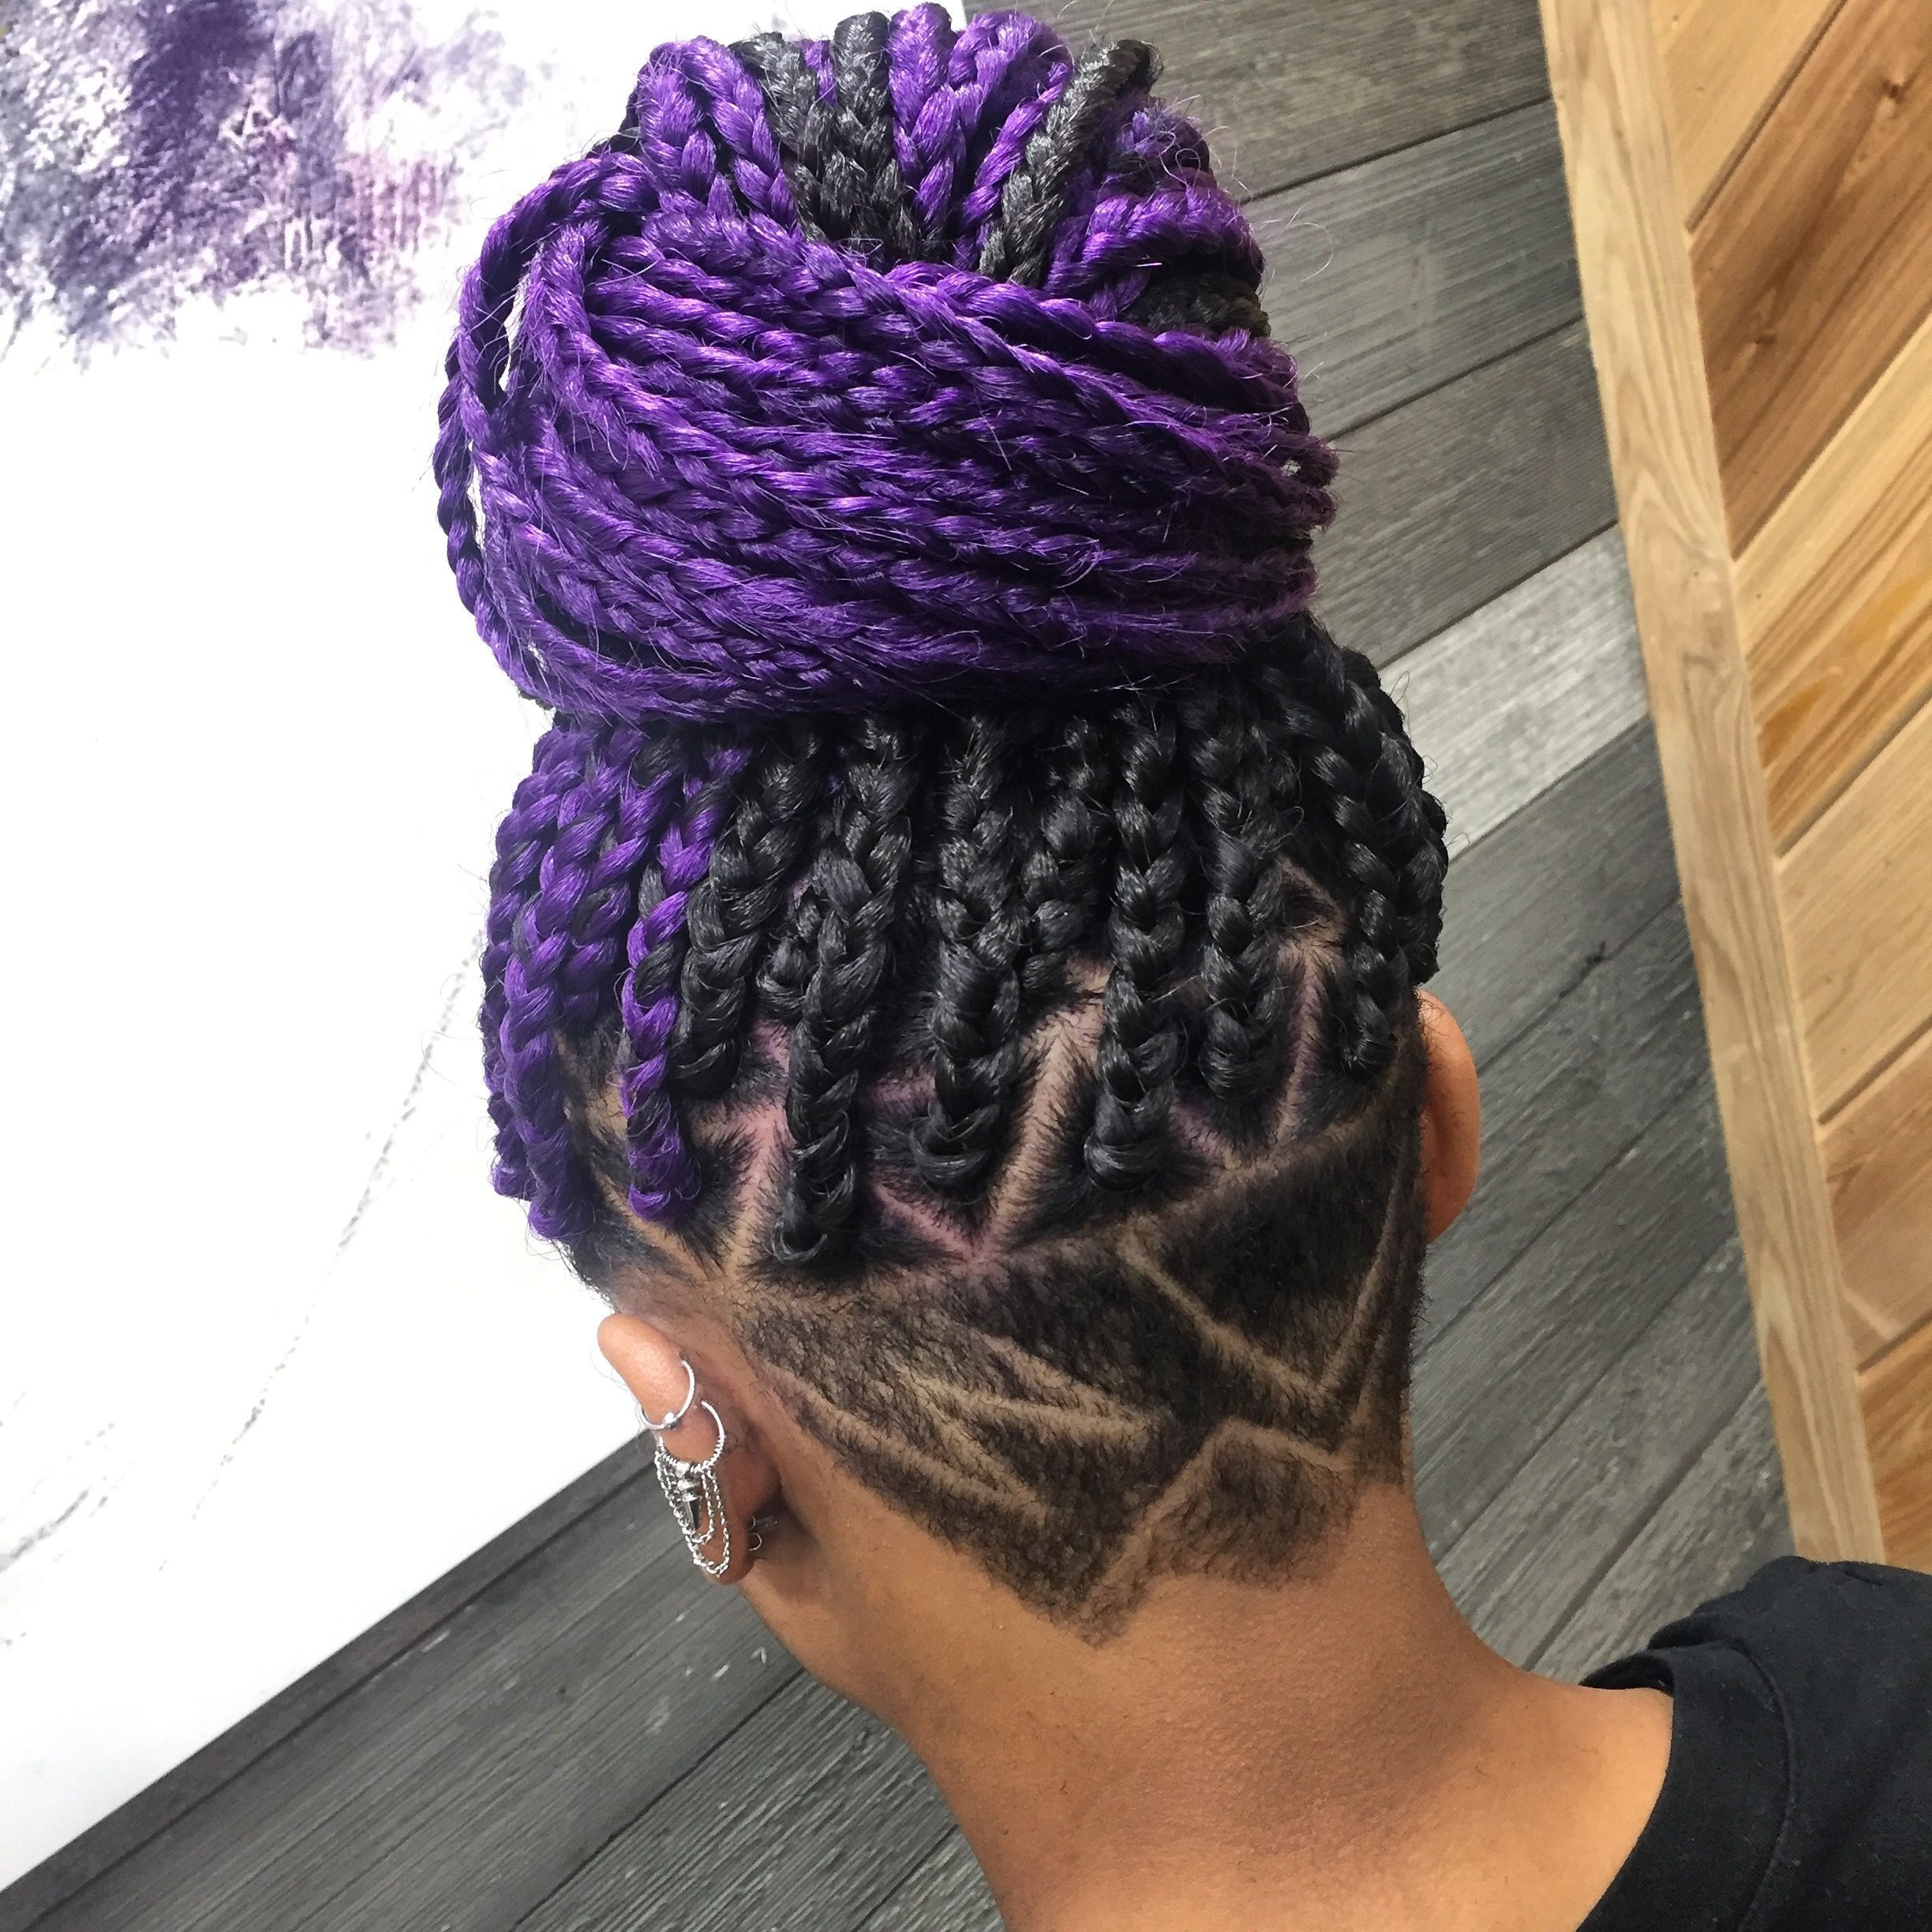 Purple box braids with undercut design. Follow my ig